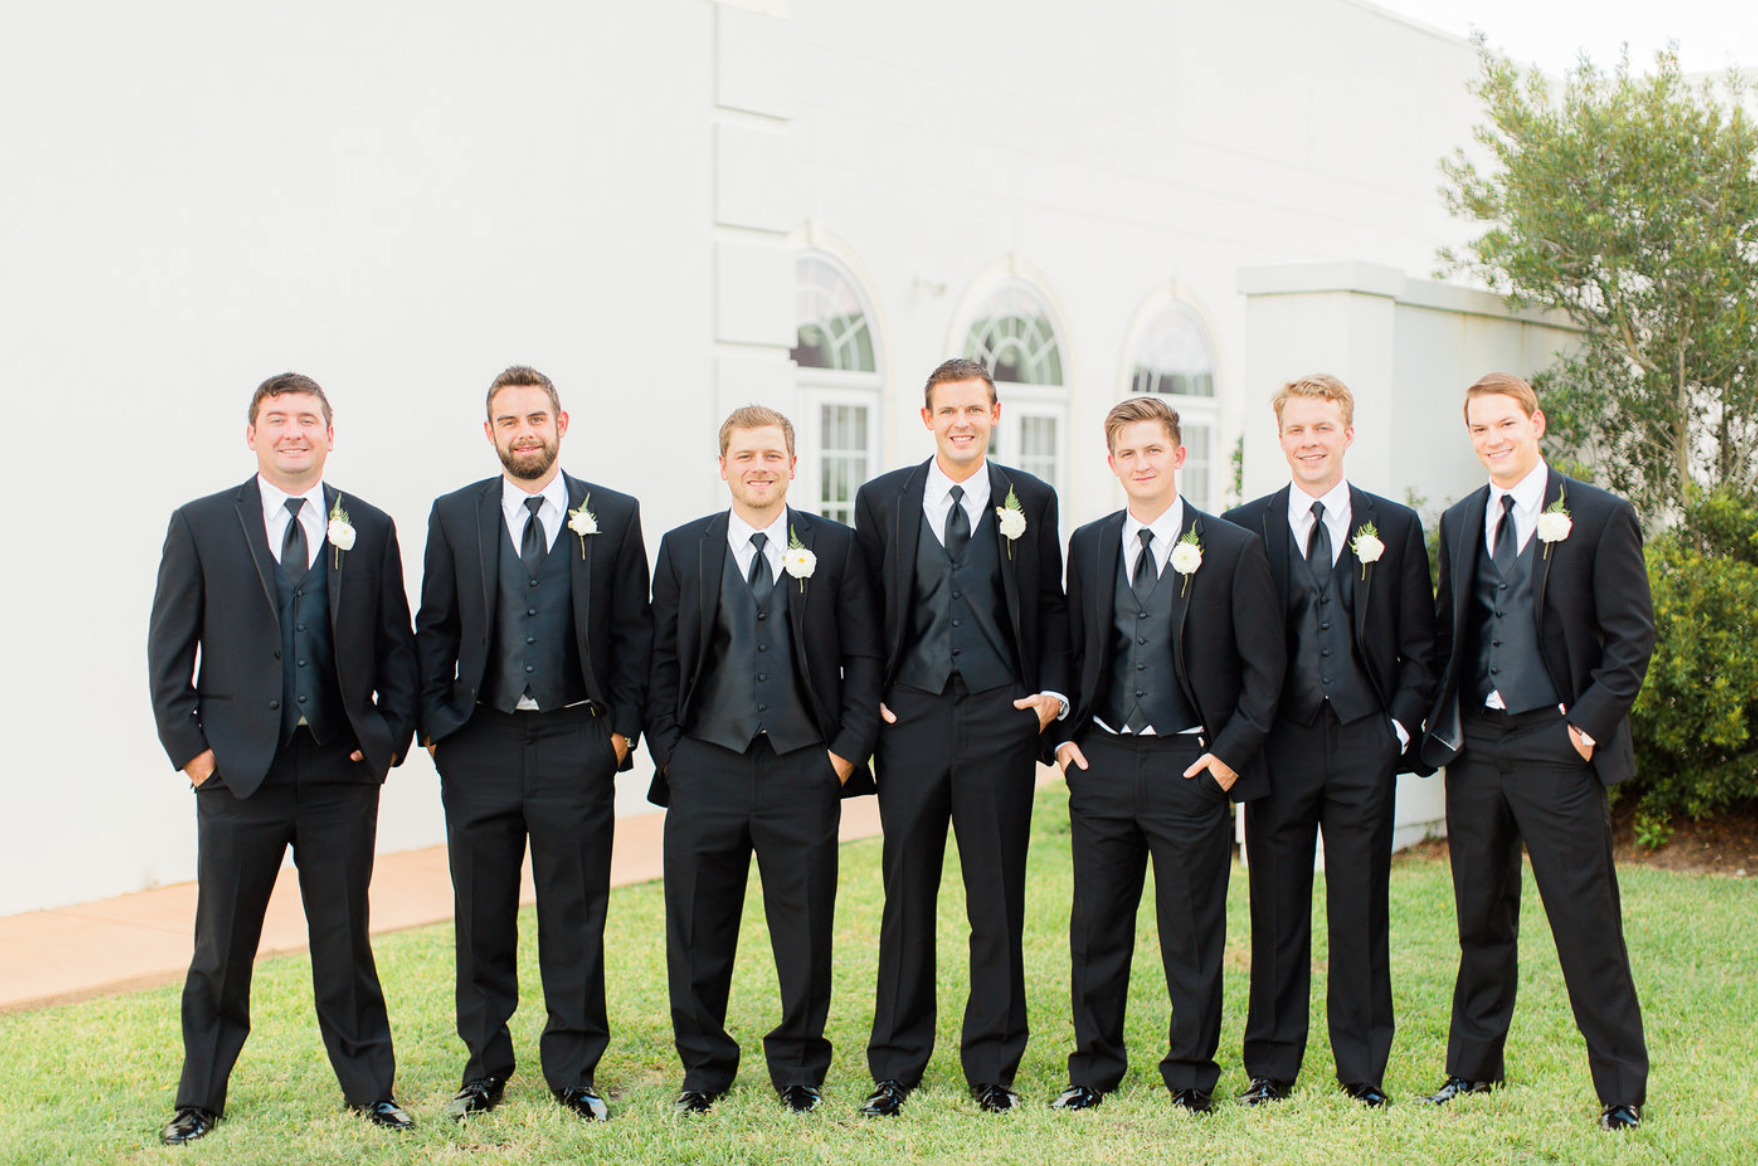 groom-groomsmen-black-suit-boutonnieres-florals-by-maxit-flower-design-in-houston-texas